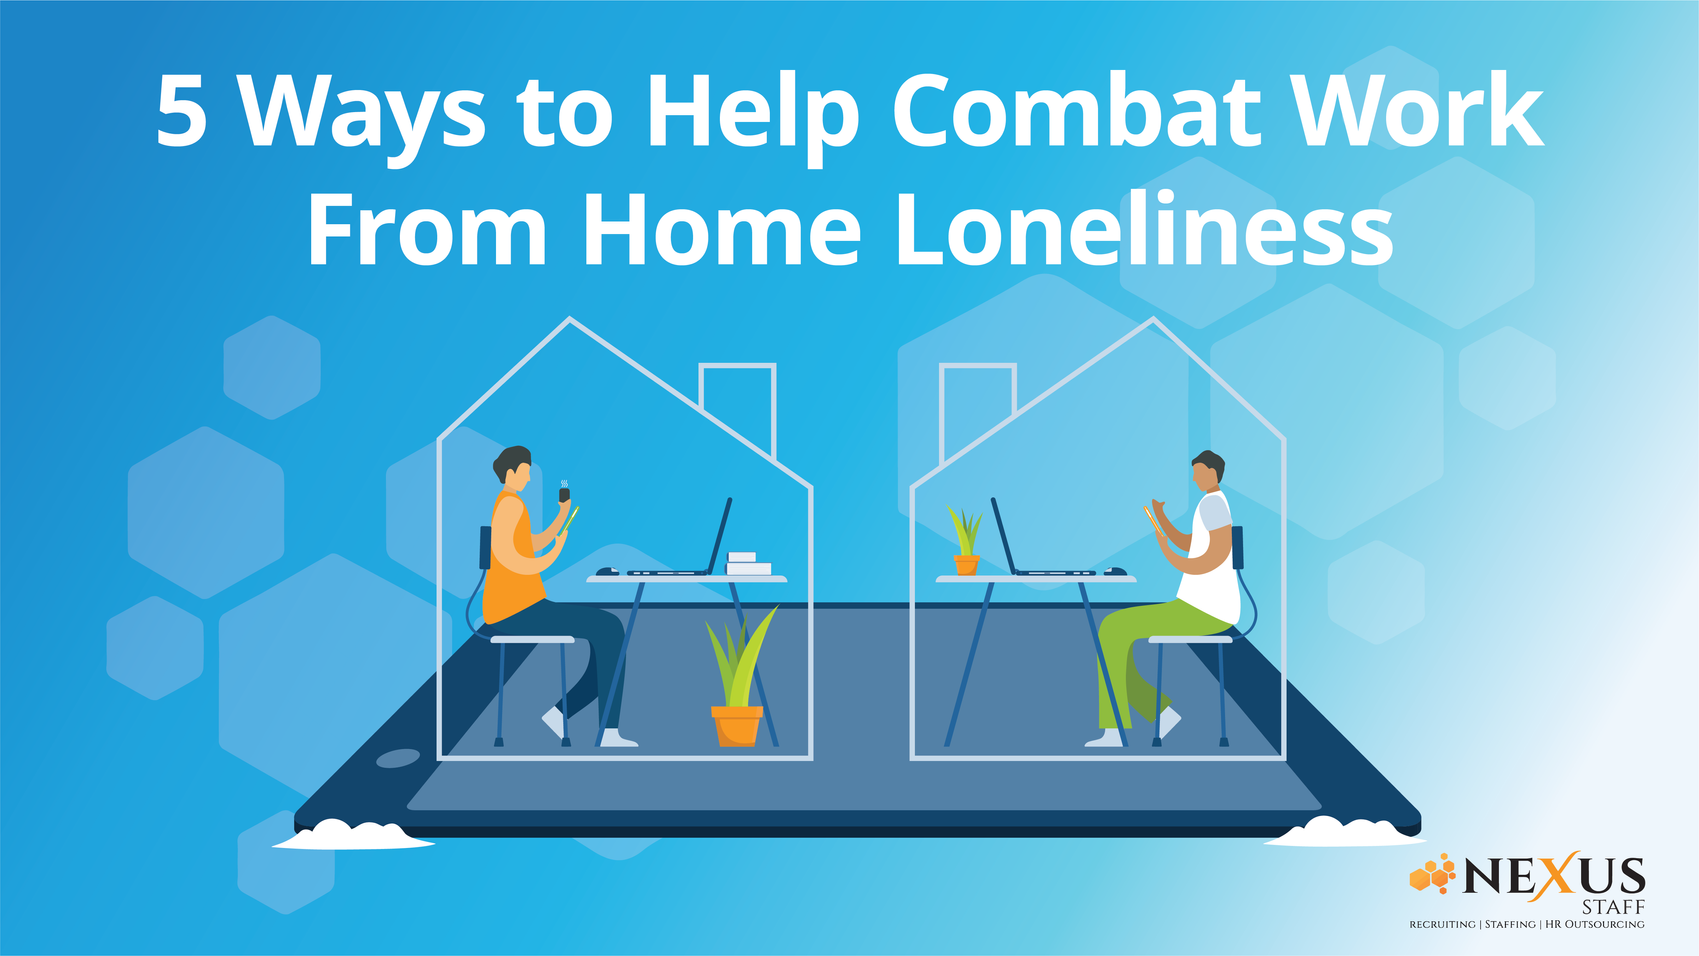 5-ways-work-home-loneliness_nov10.png